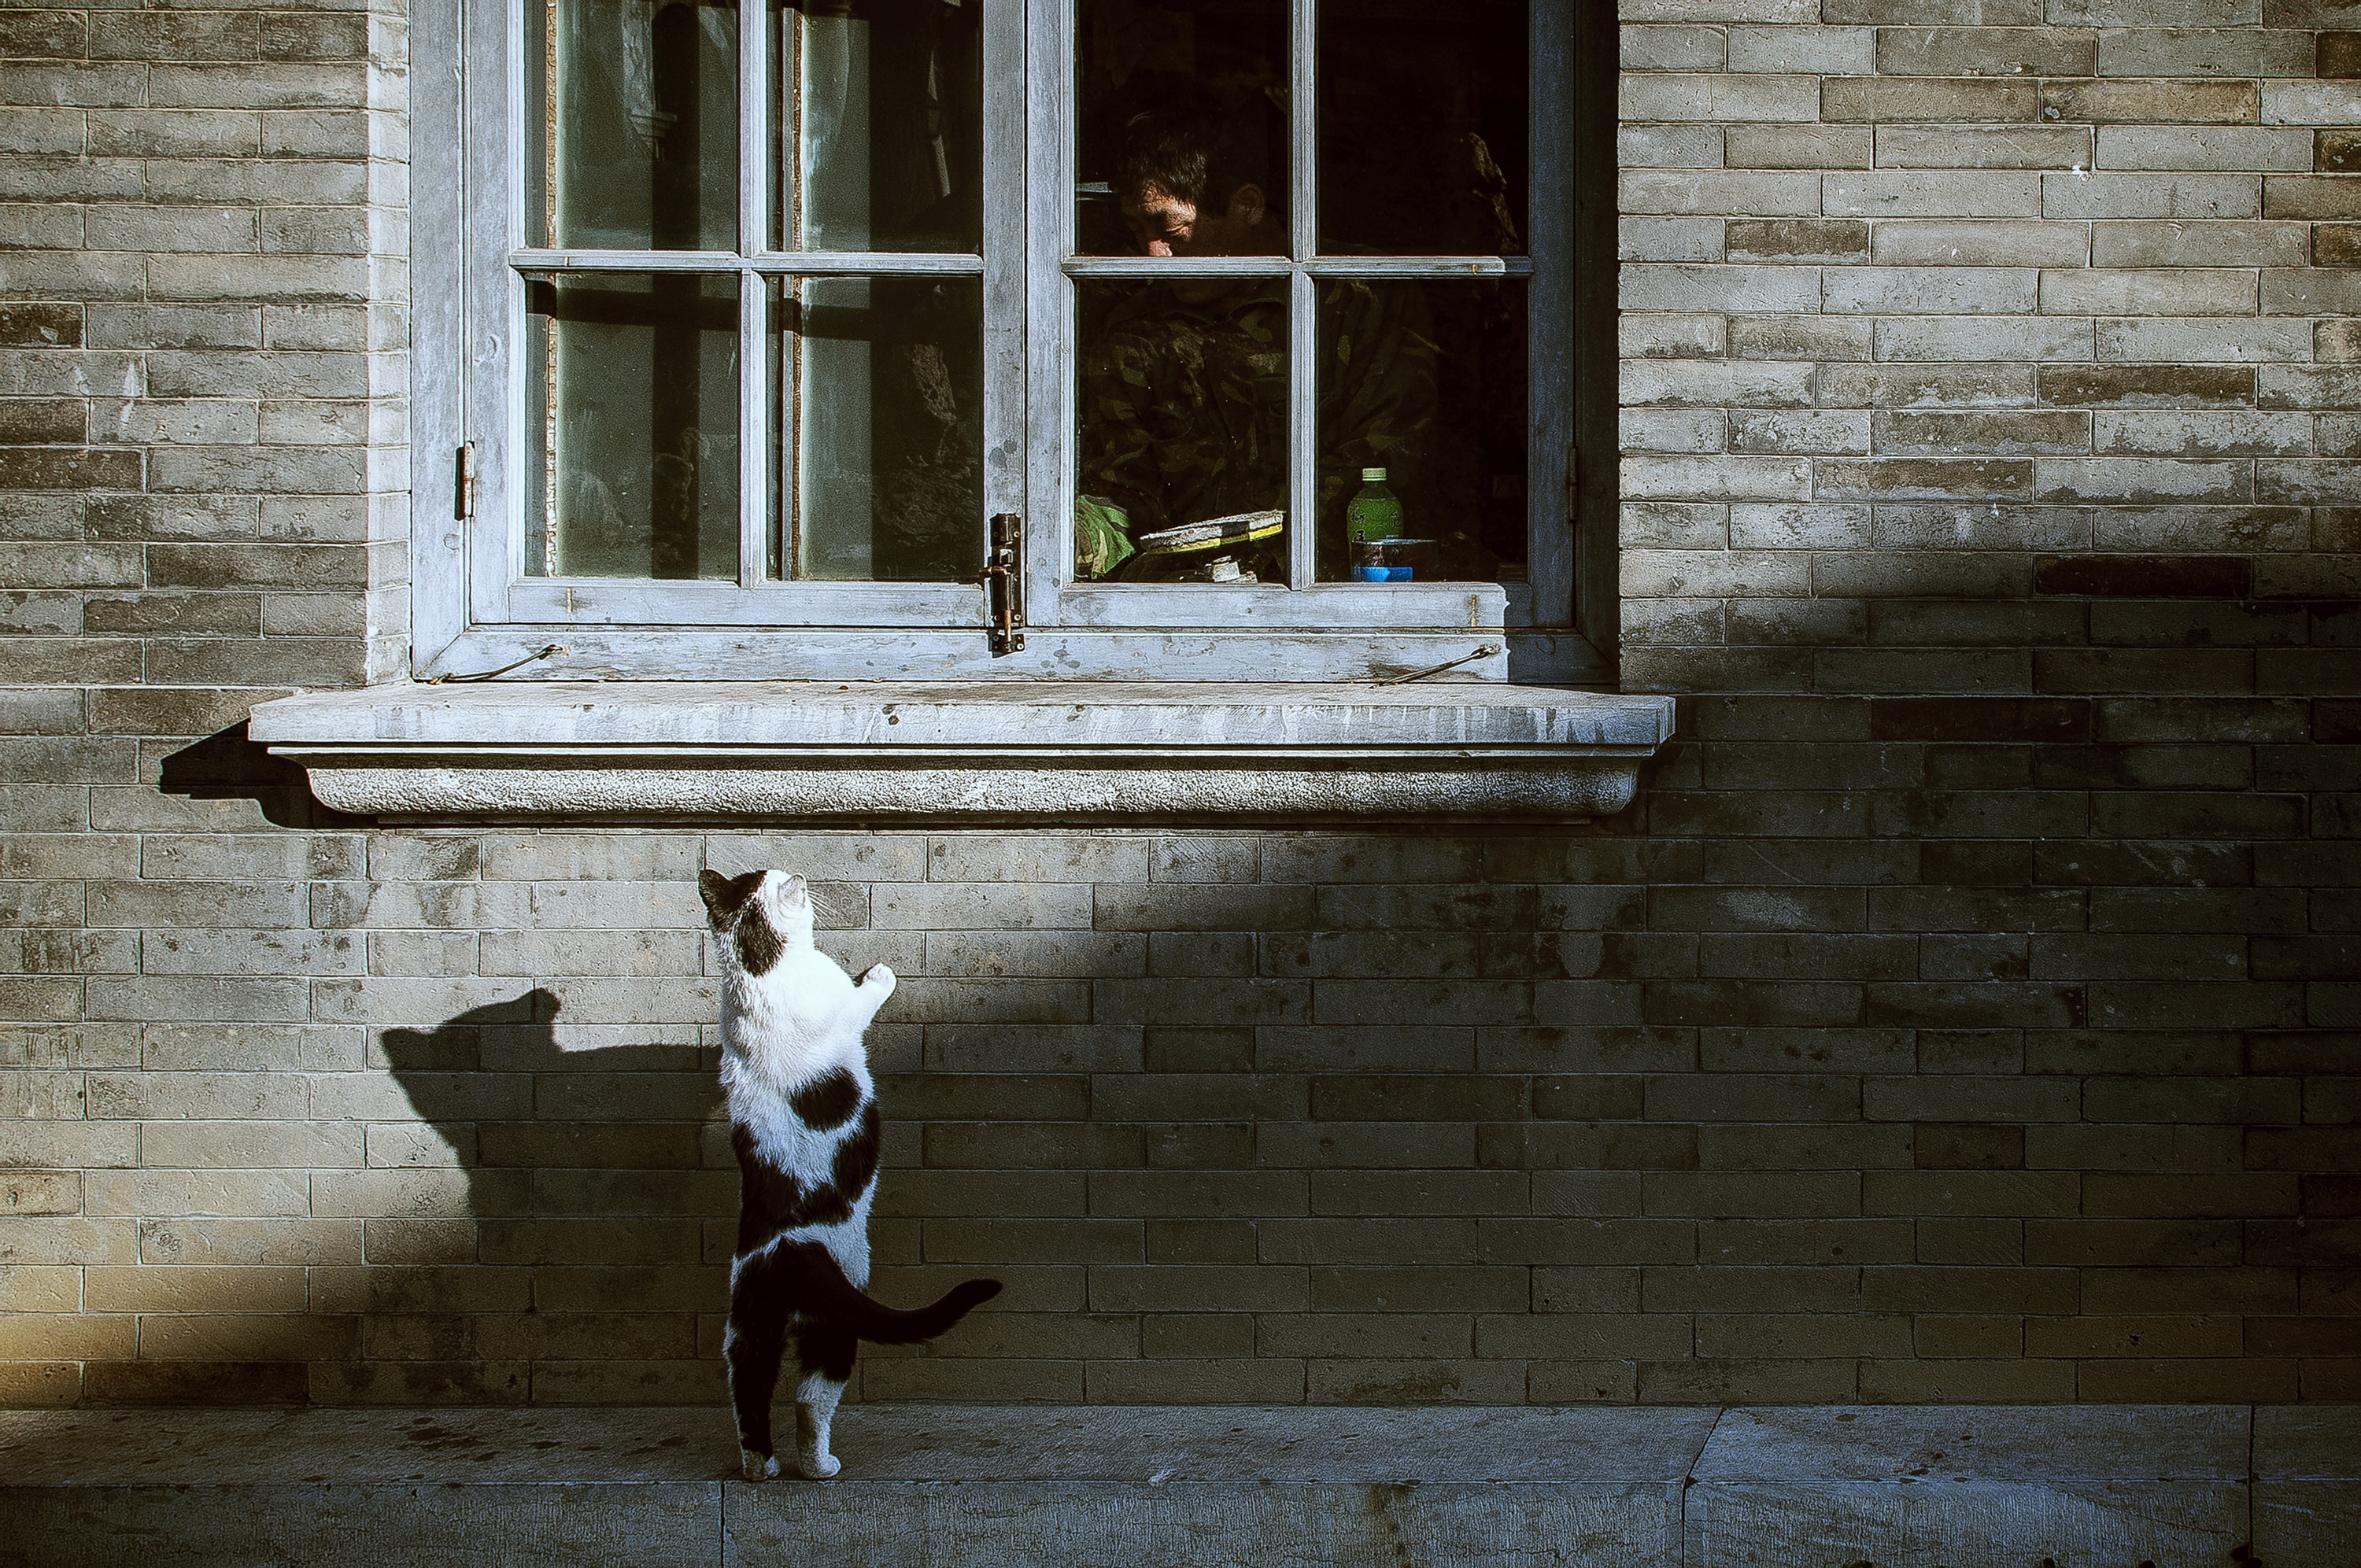 Black and white domestic cat standing against wall near window with man inside